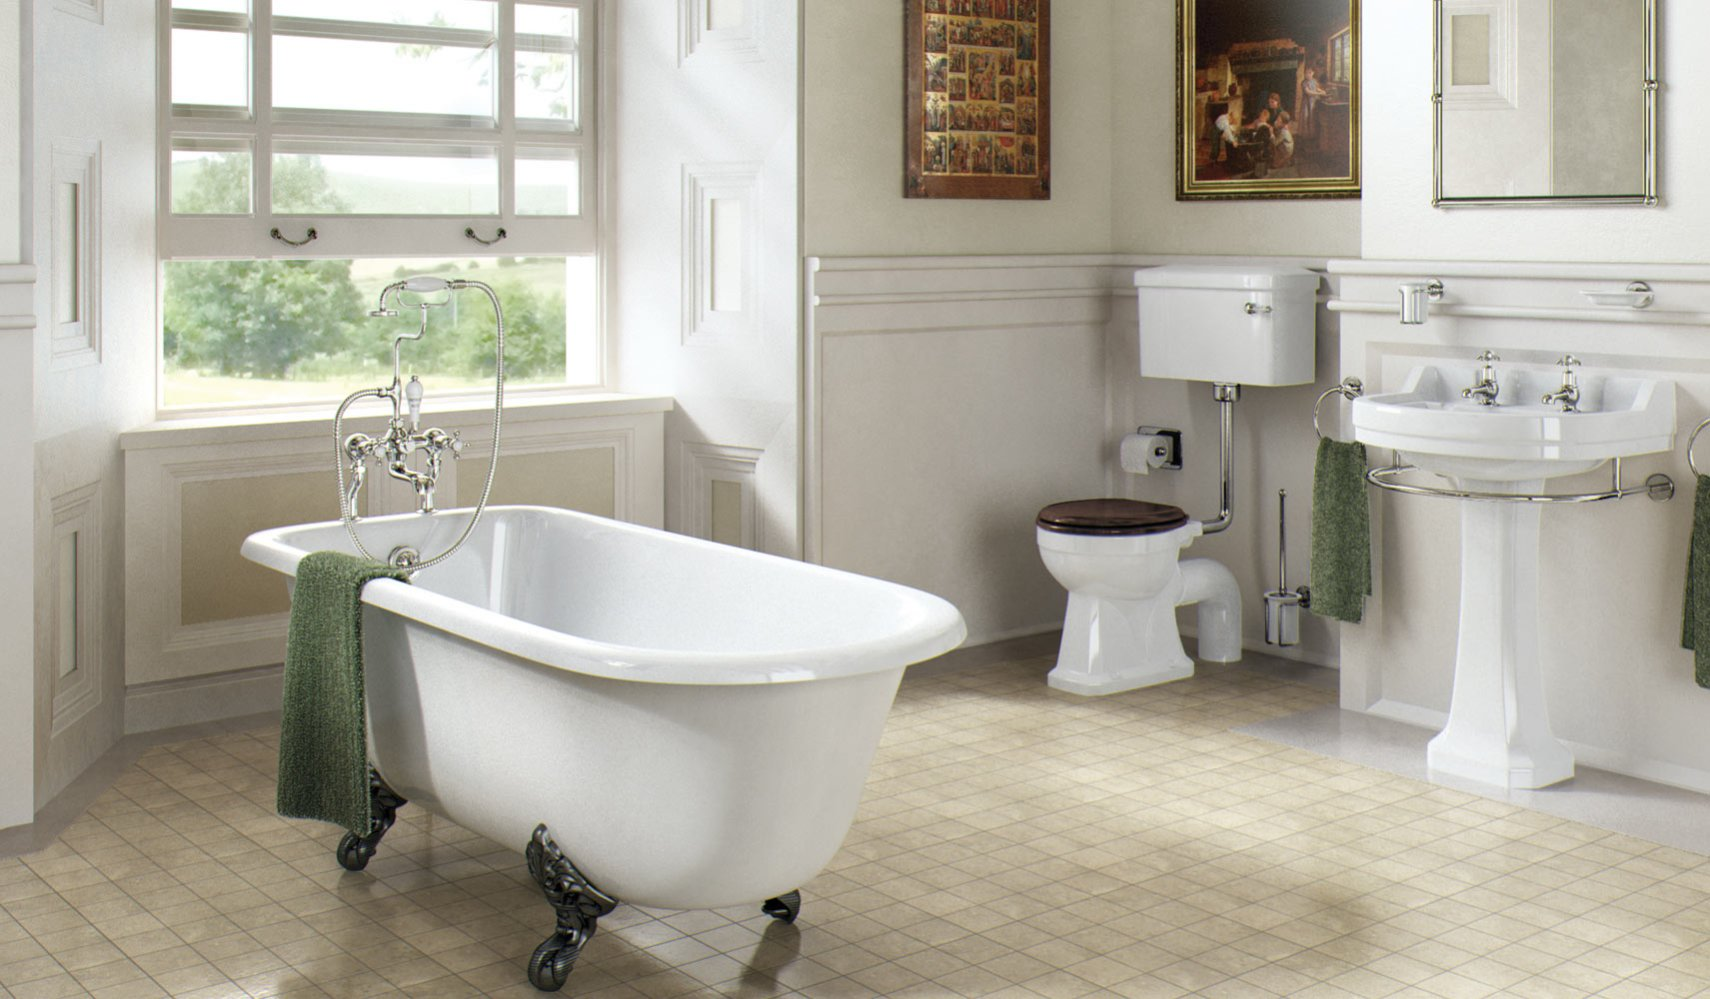 25 marvelous traditional bathroom designs for your inspiration for Bathroom ideas edwardian